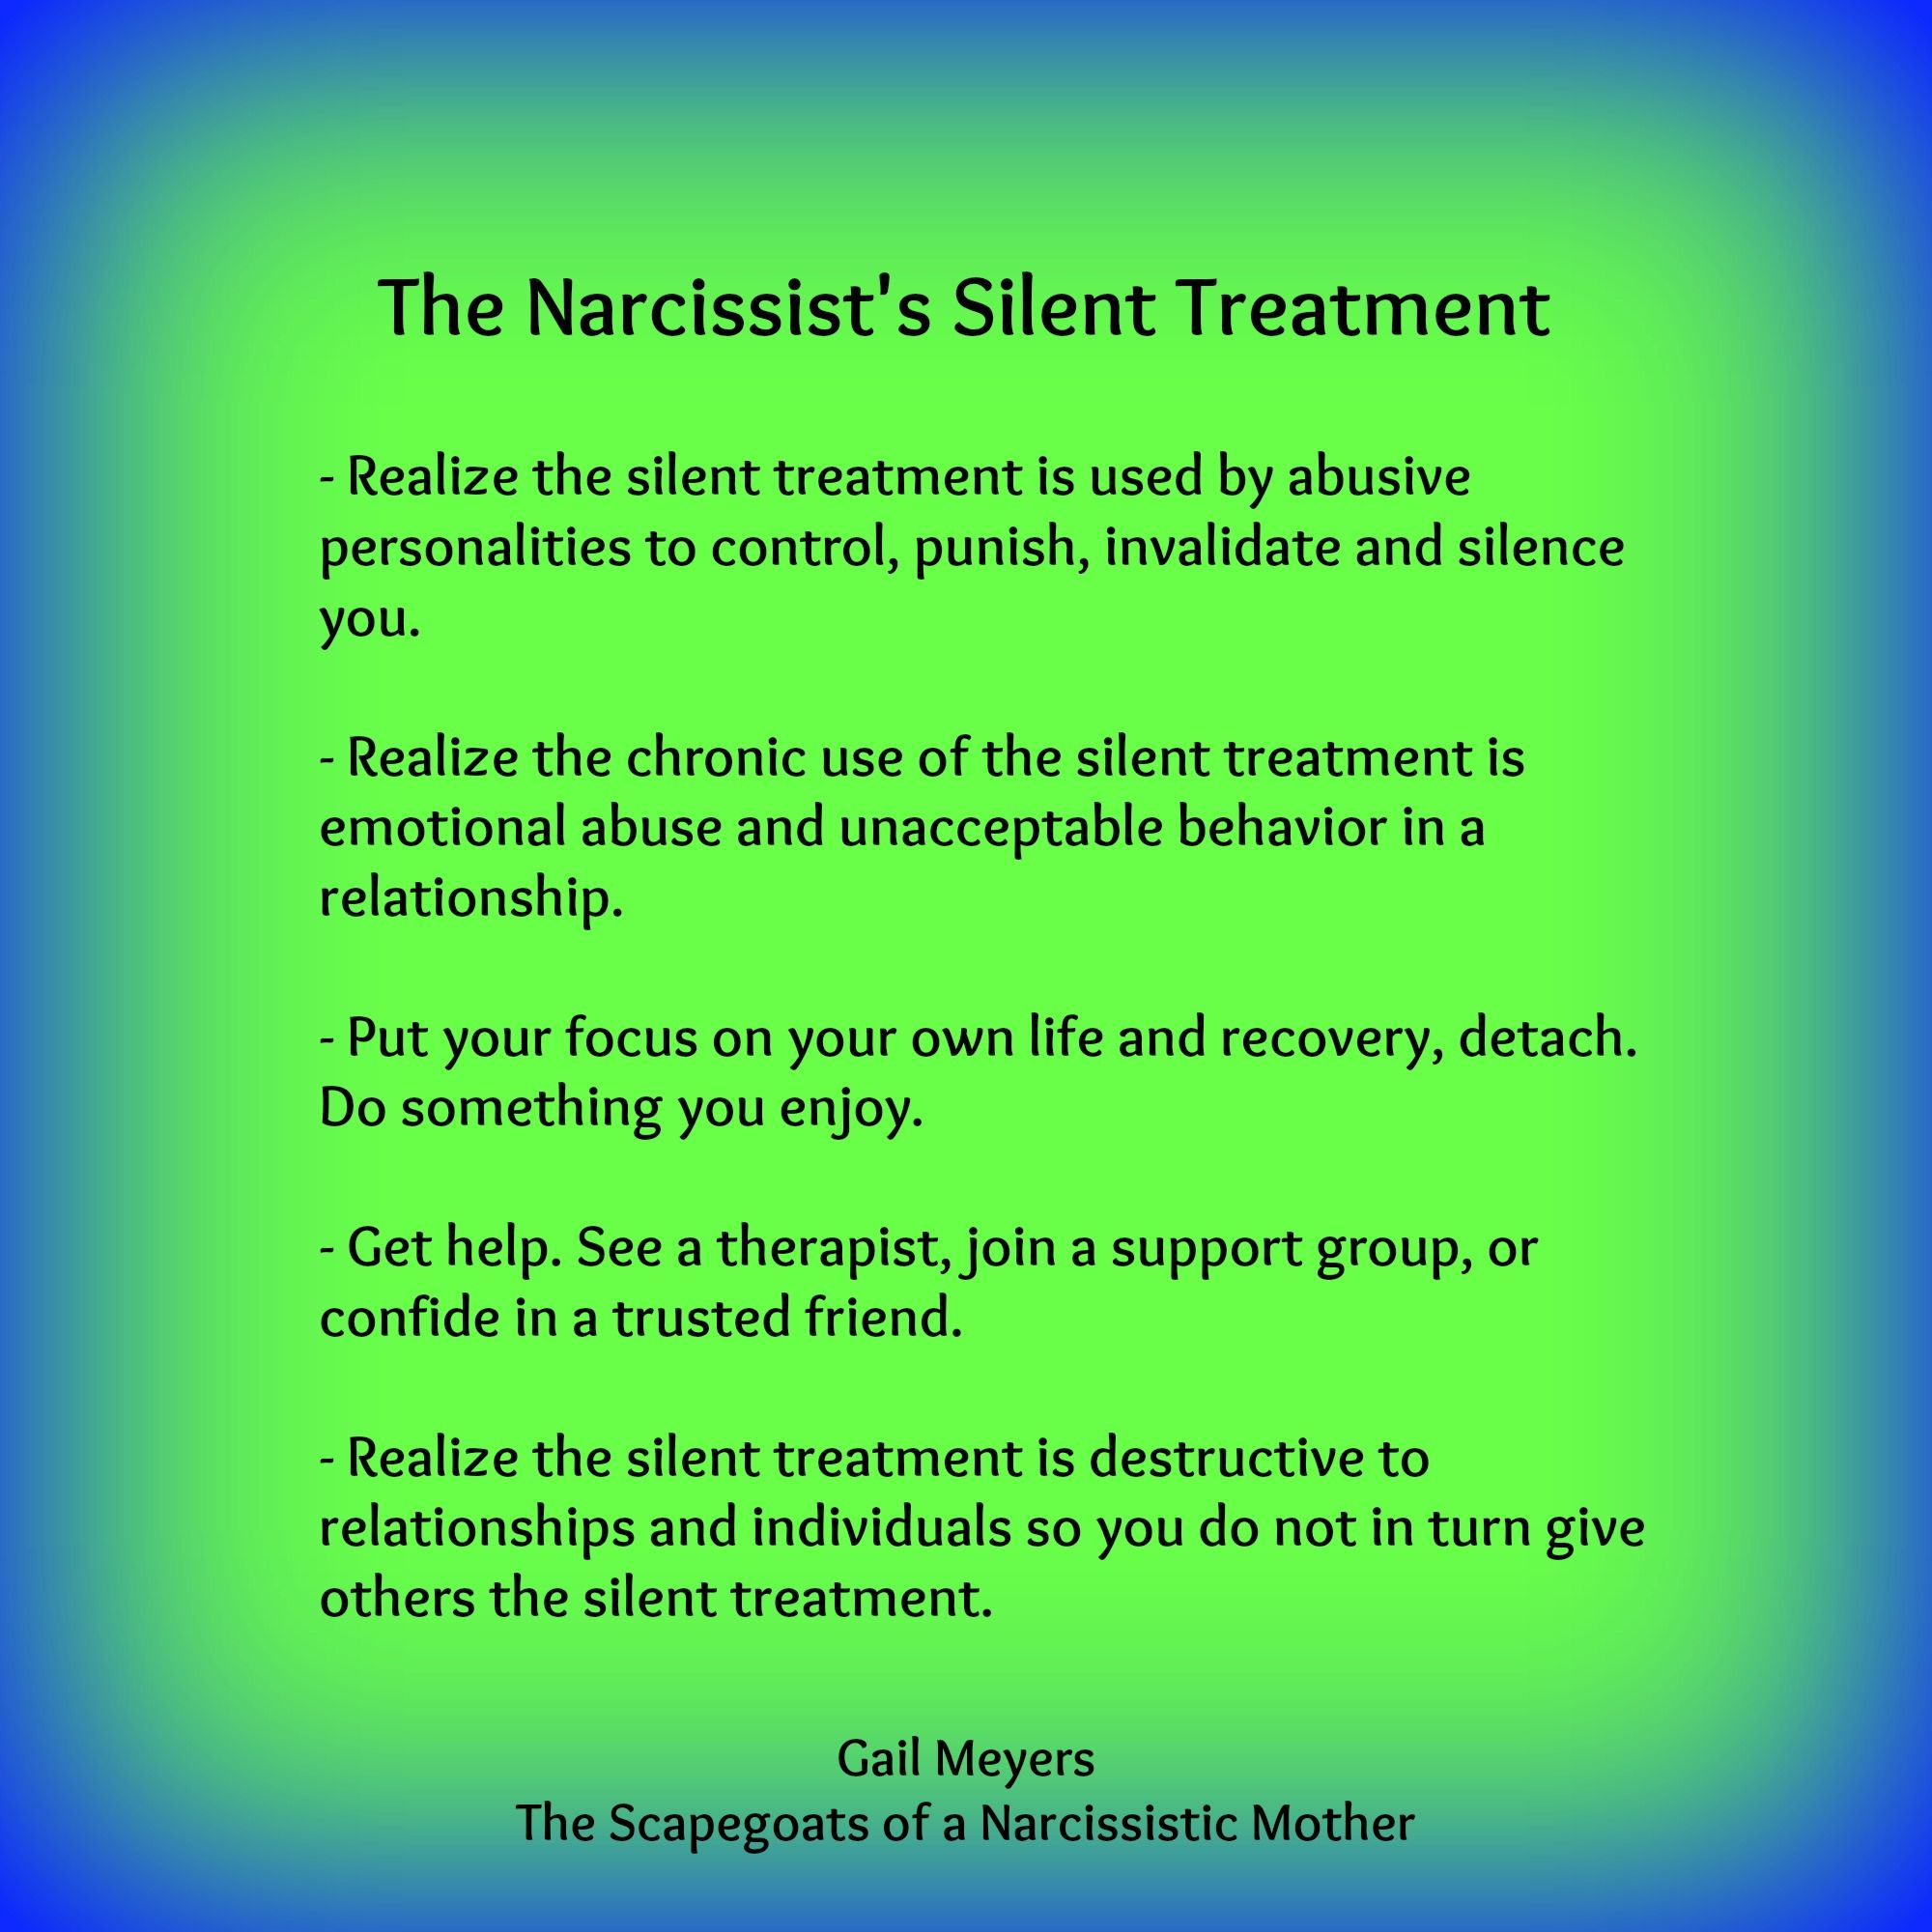 Is the silent treatment emotional abuse